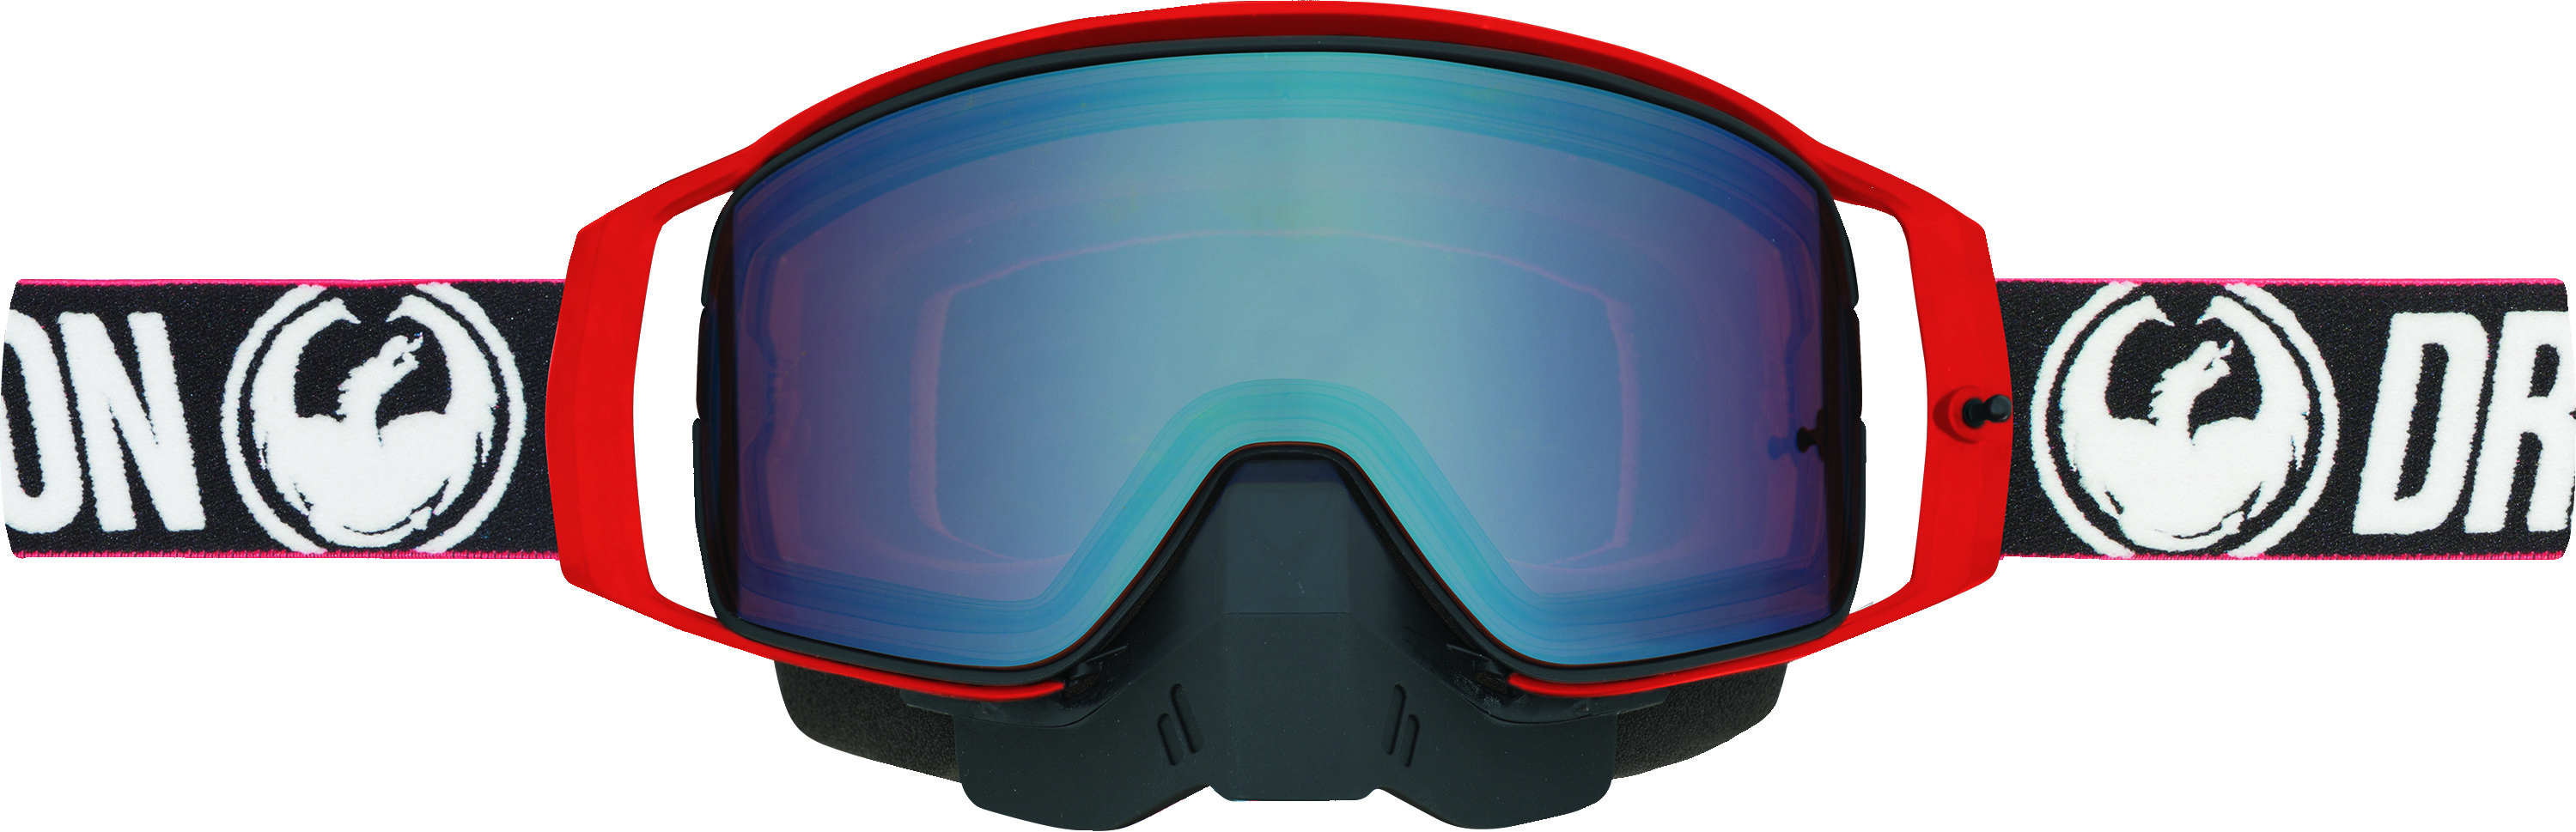 NFX2 Snow Goggle Factory Lum Flash Blue Ion + Dark Smoke Le